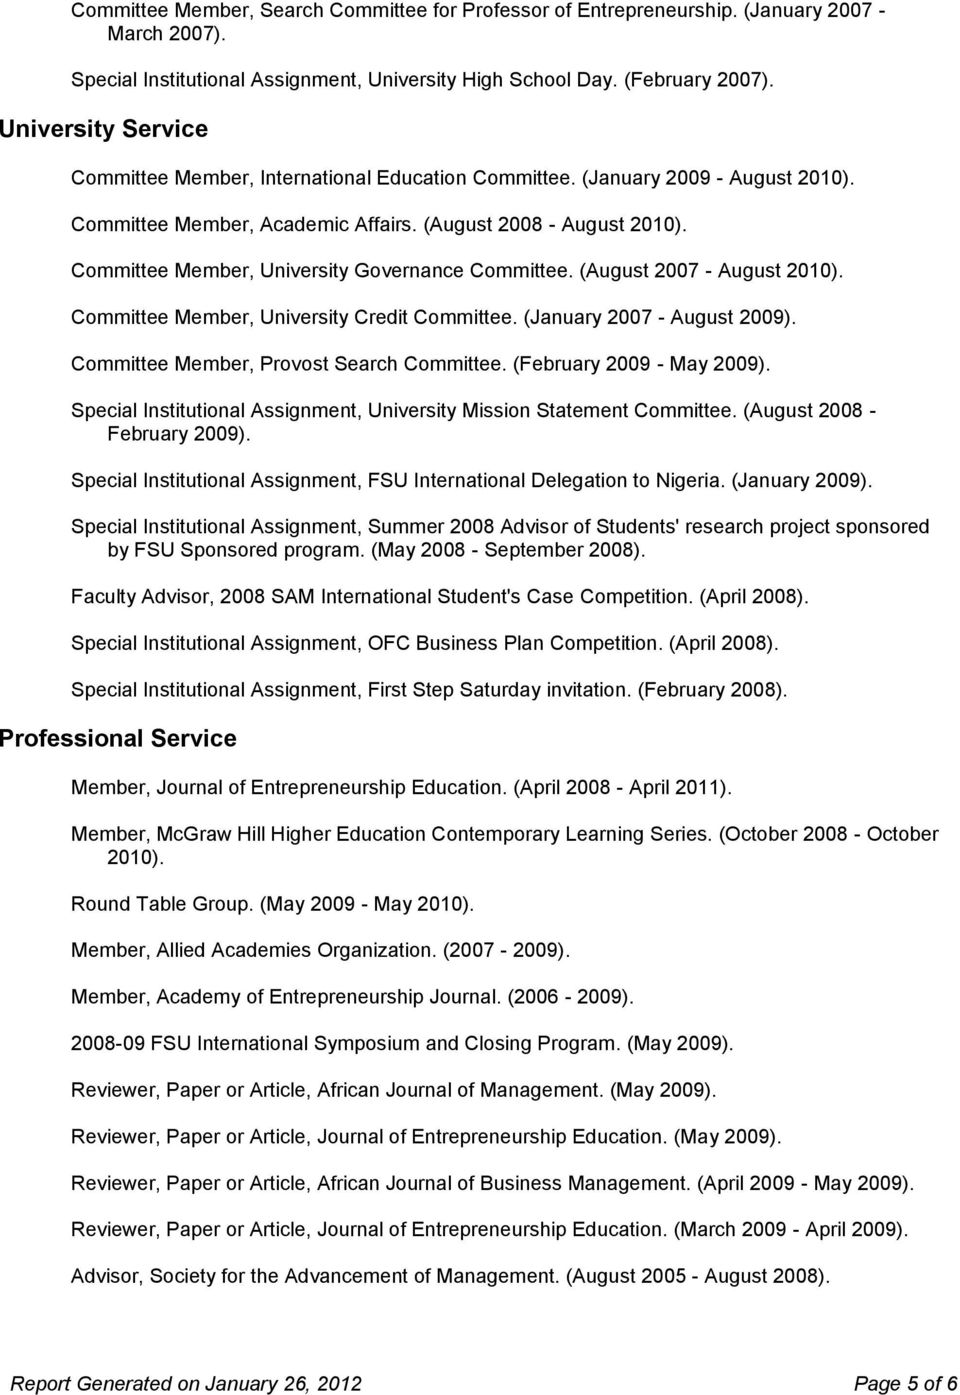 Committee Member, University Governance Committee. (August 2007 - August 2010). Committee Member, University Credit Committee. (January 2007 - August 2009). Committee Member, Provost Search Committee.